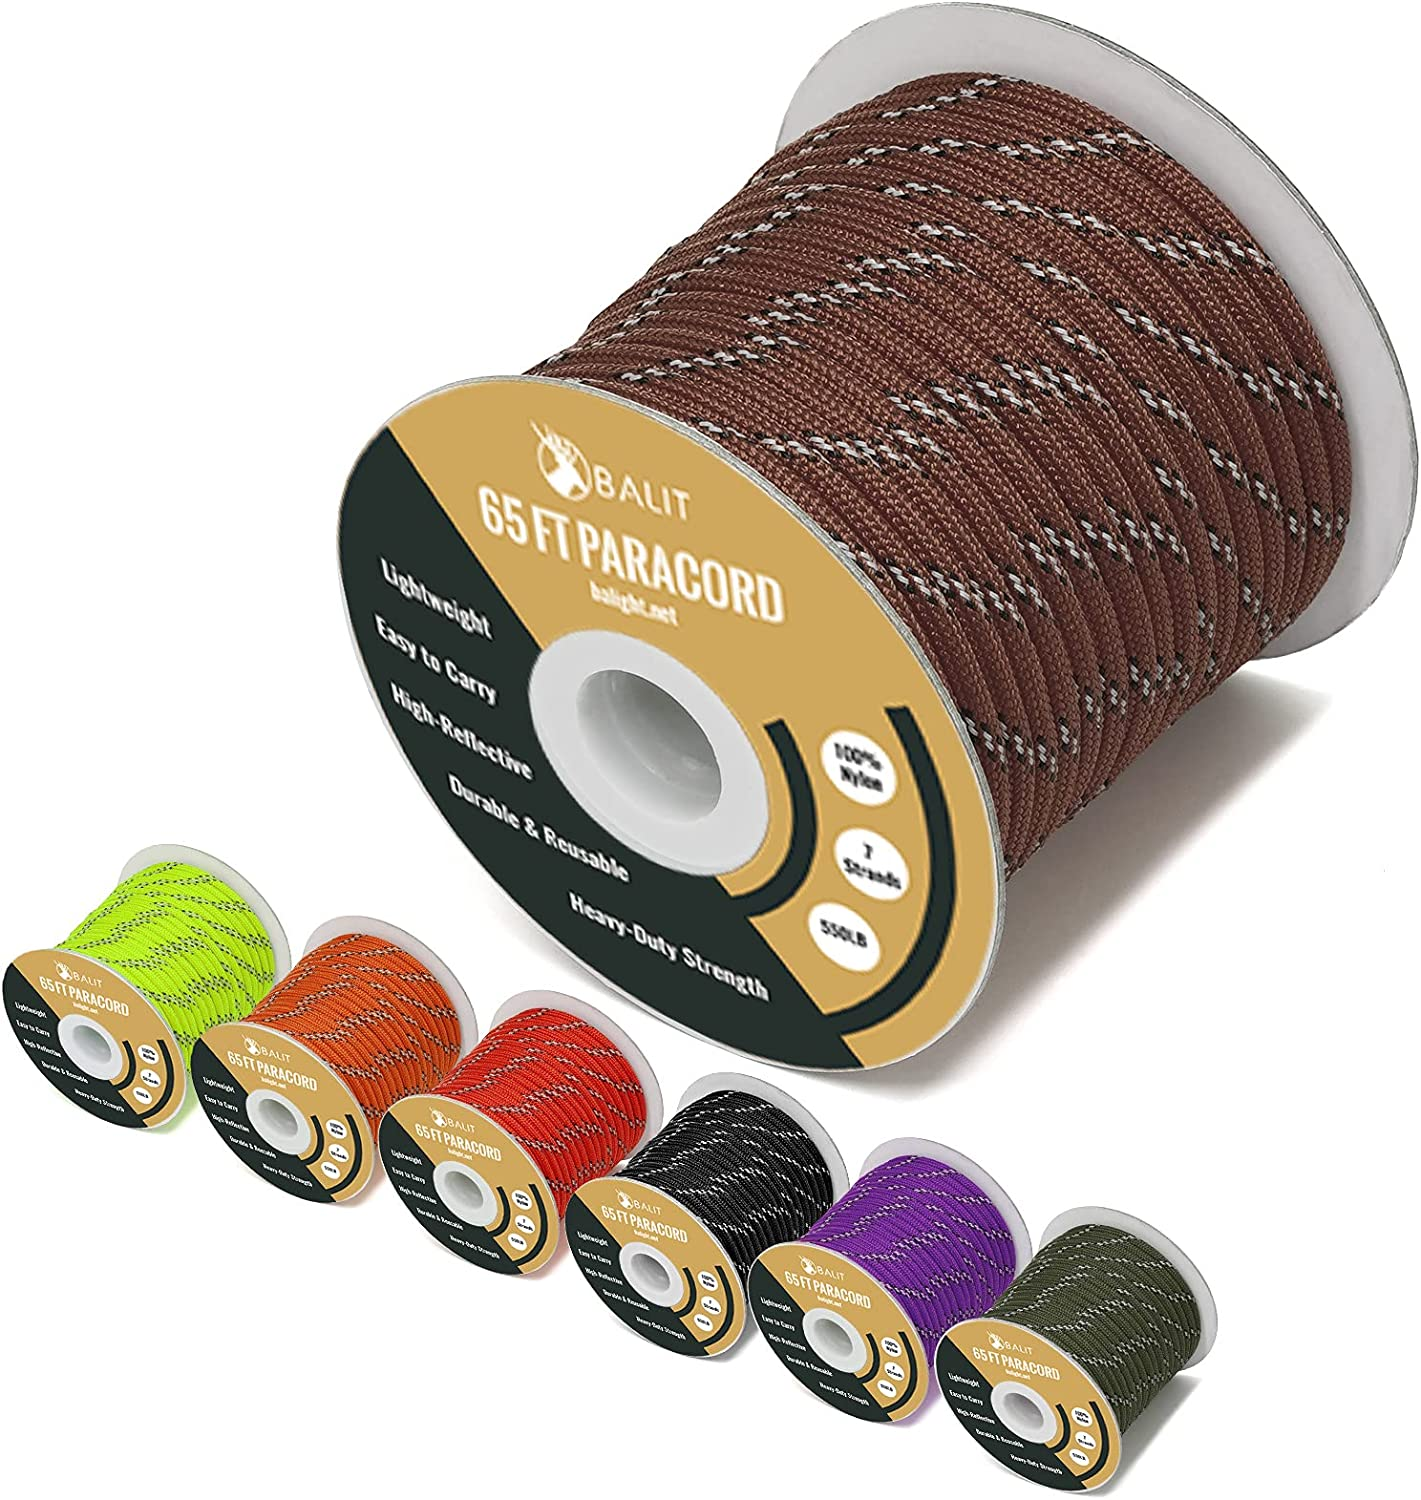 Balit Reflective 550 Paracord Oakland Mall Parachute Excellent Cord 4mm 7 St Rope Tent